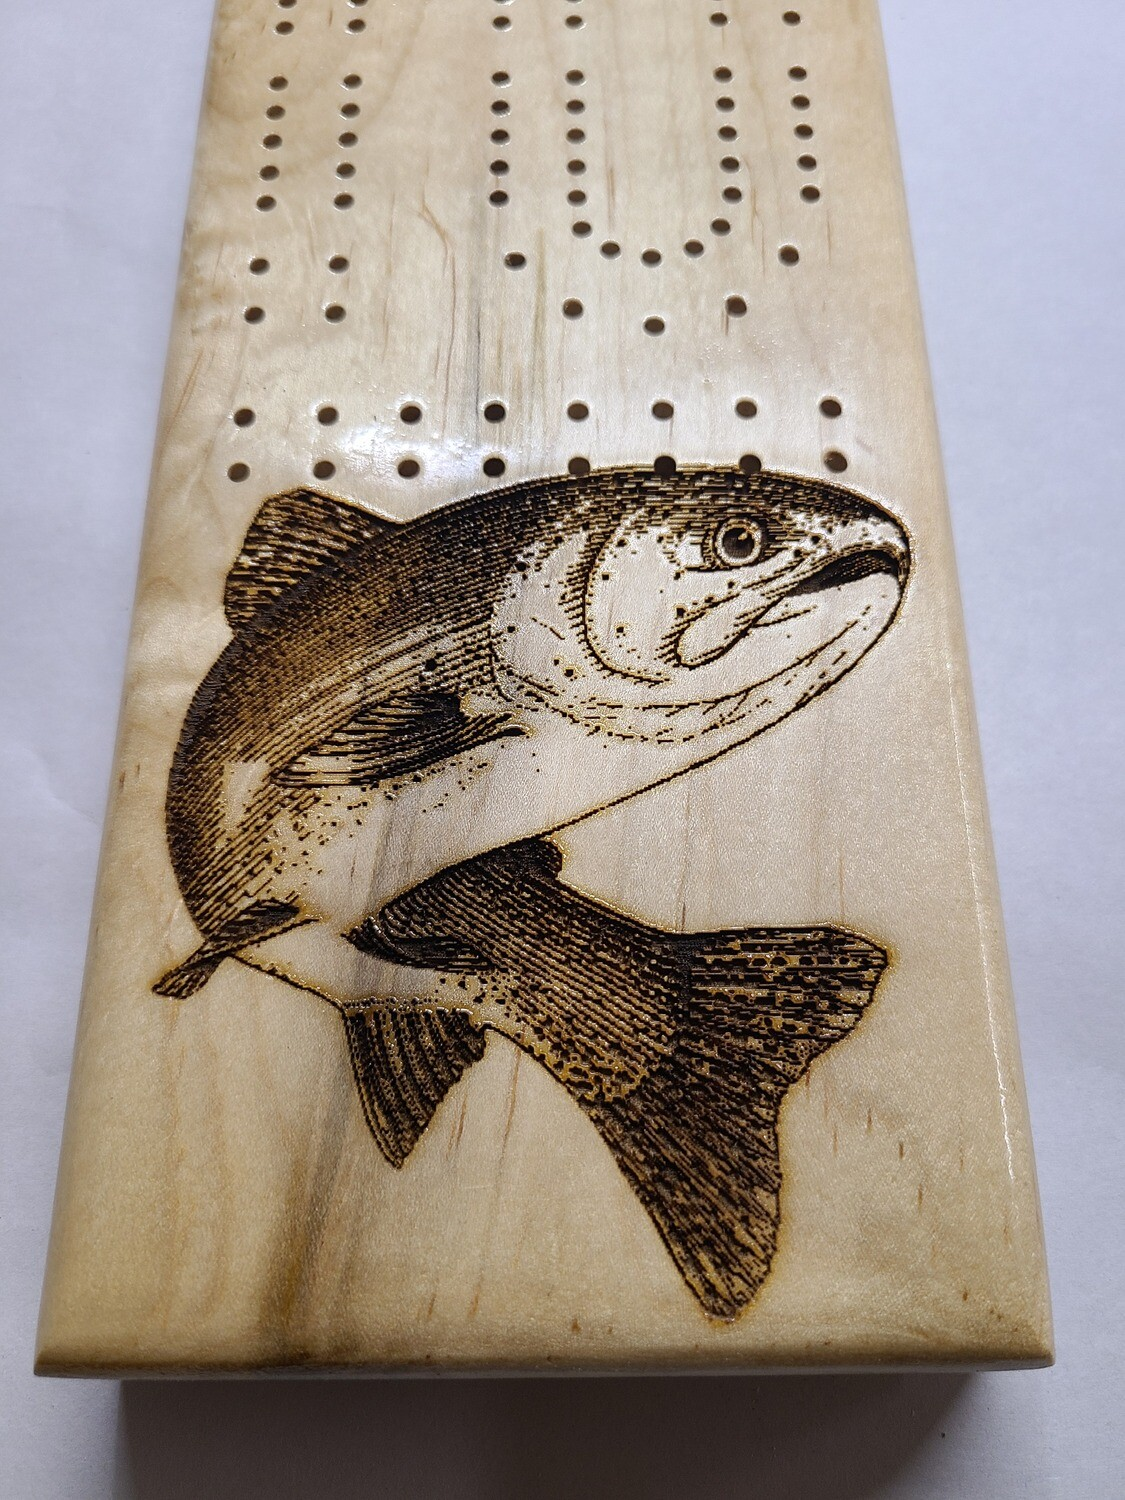 2 Track Cribbage Board w/trout engraving